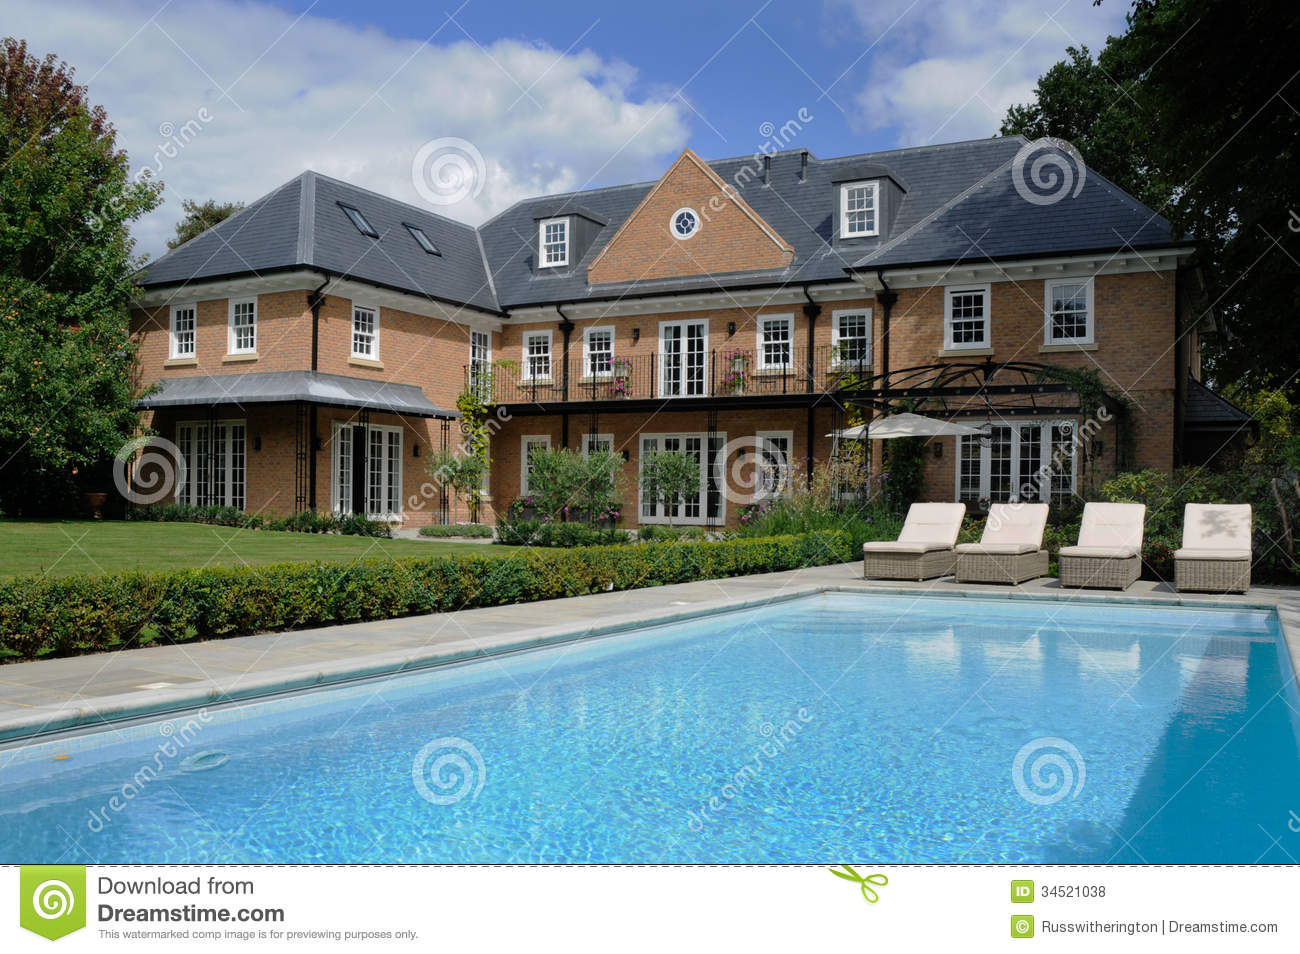 House with pool stock photo image of roof residentual for Garden pool house